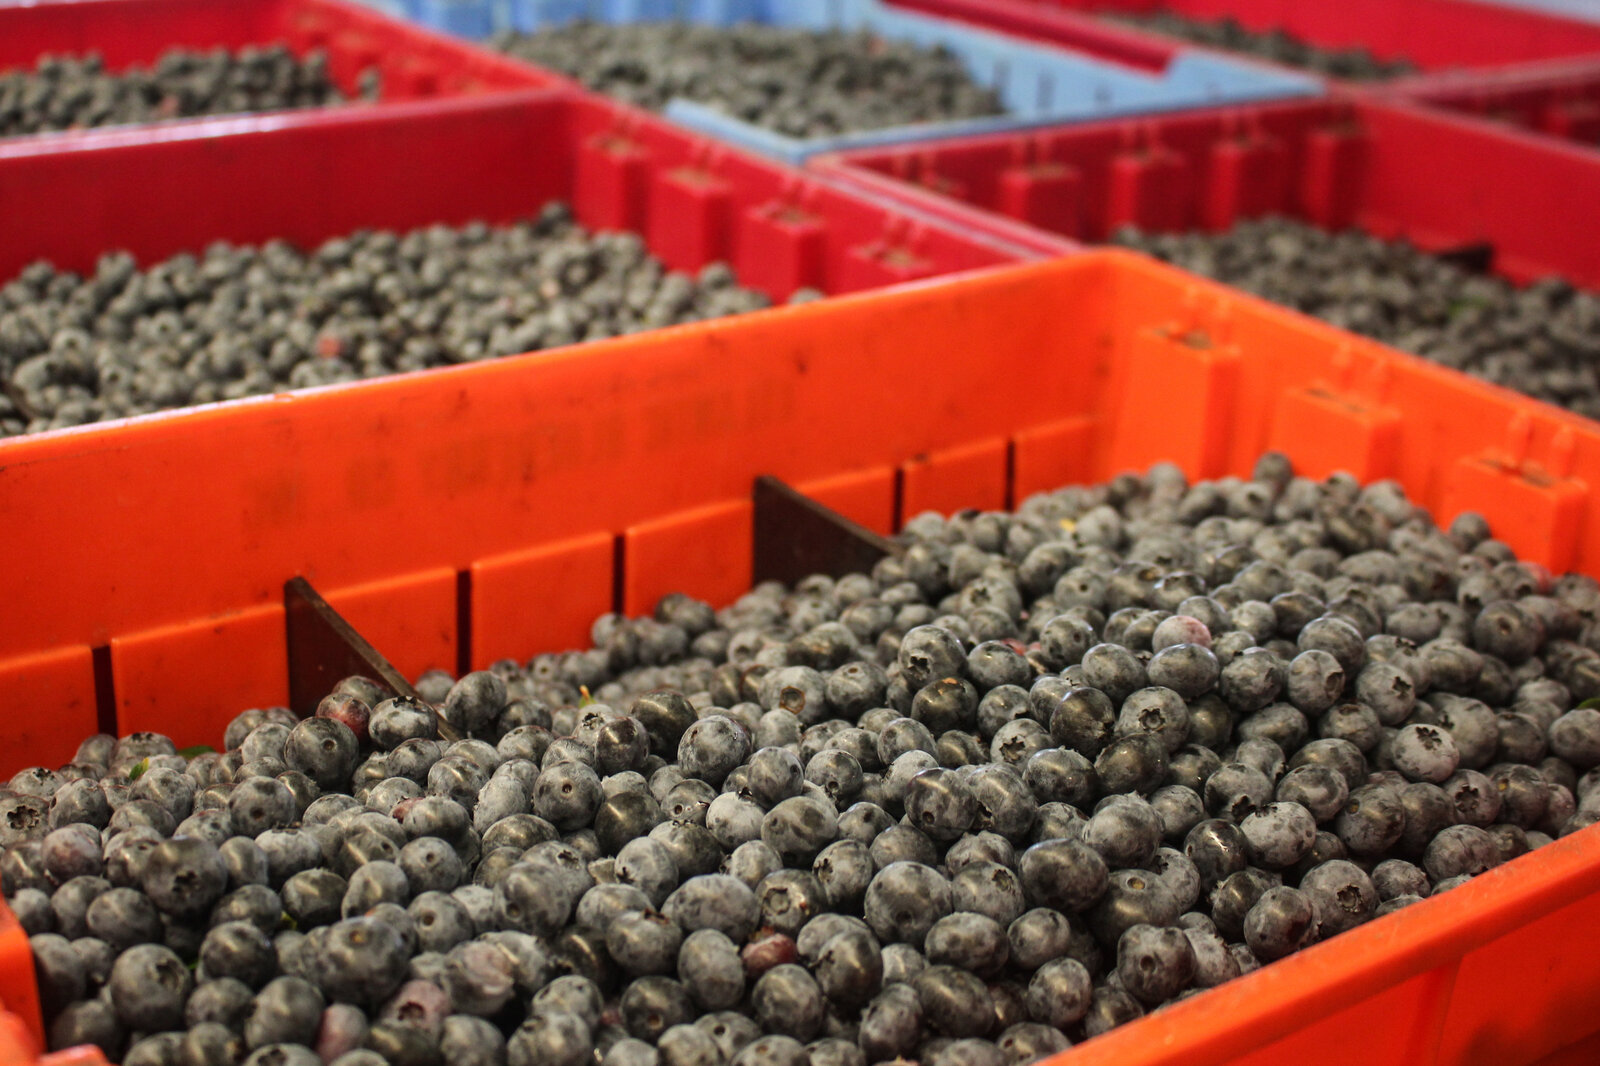 Blueberries wait for processing at the Atlantic Blueberry Co. packing facility in Hammonton, N.J.